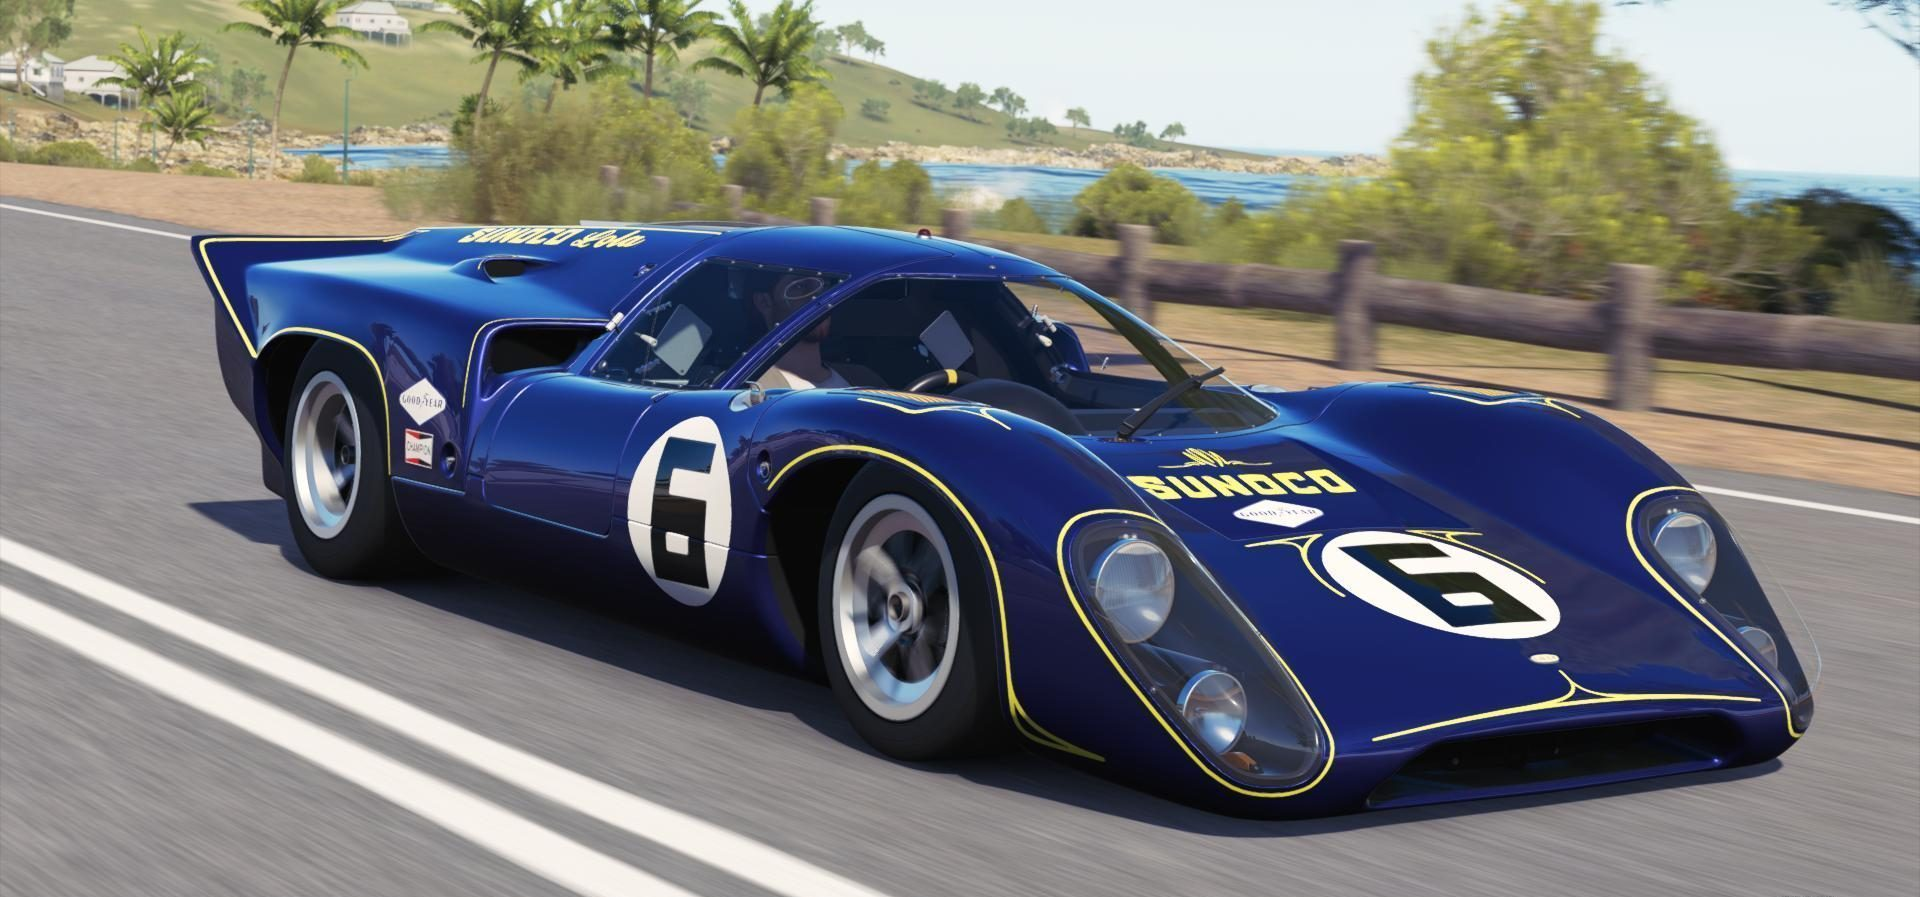 February Forzathon Events To Include Ferrari Lola